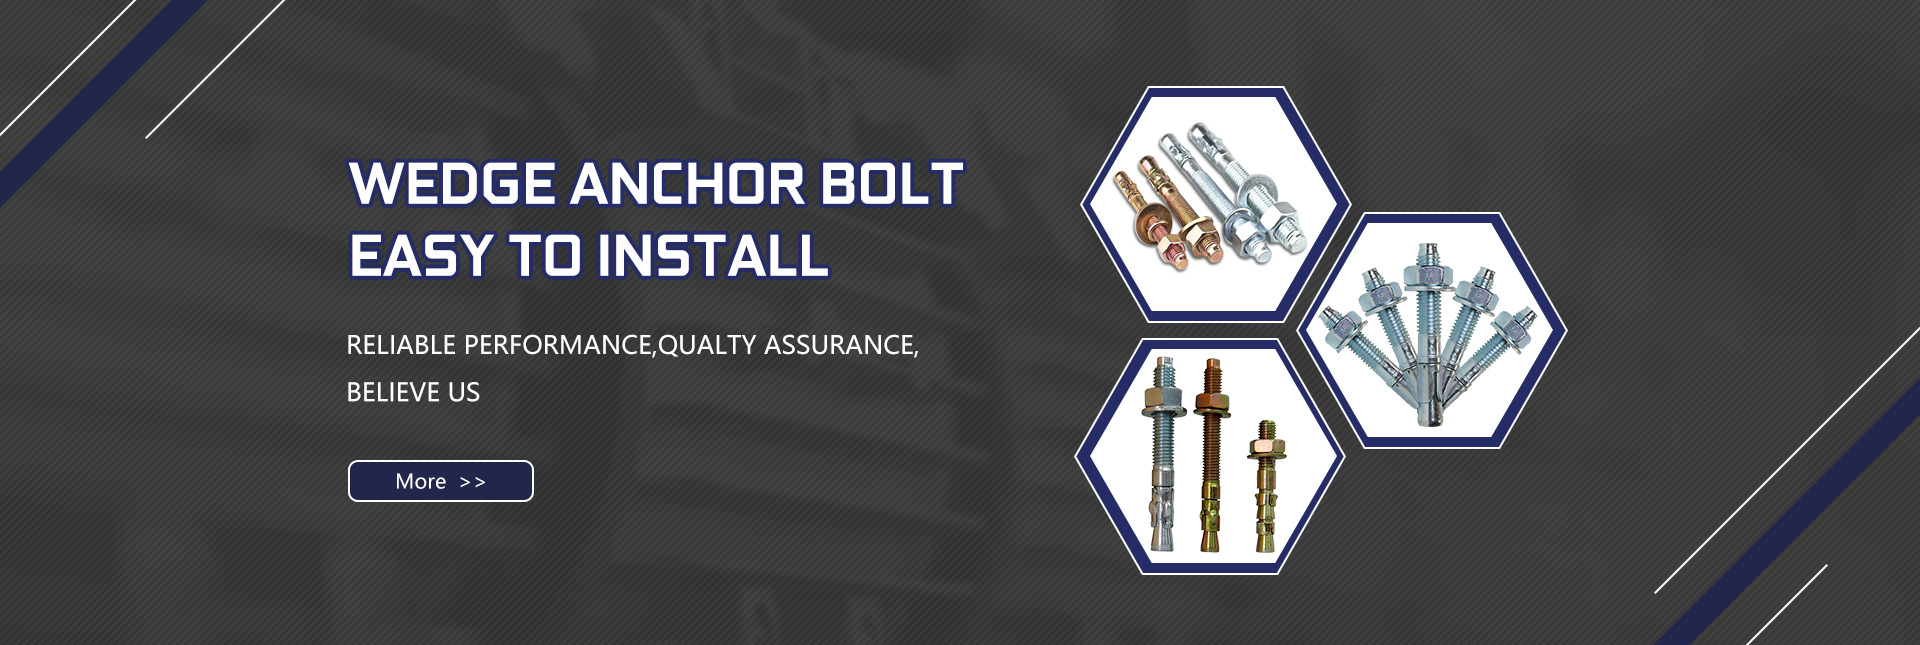 wedge anchor bolt Easy to install